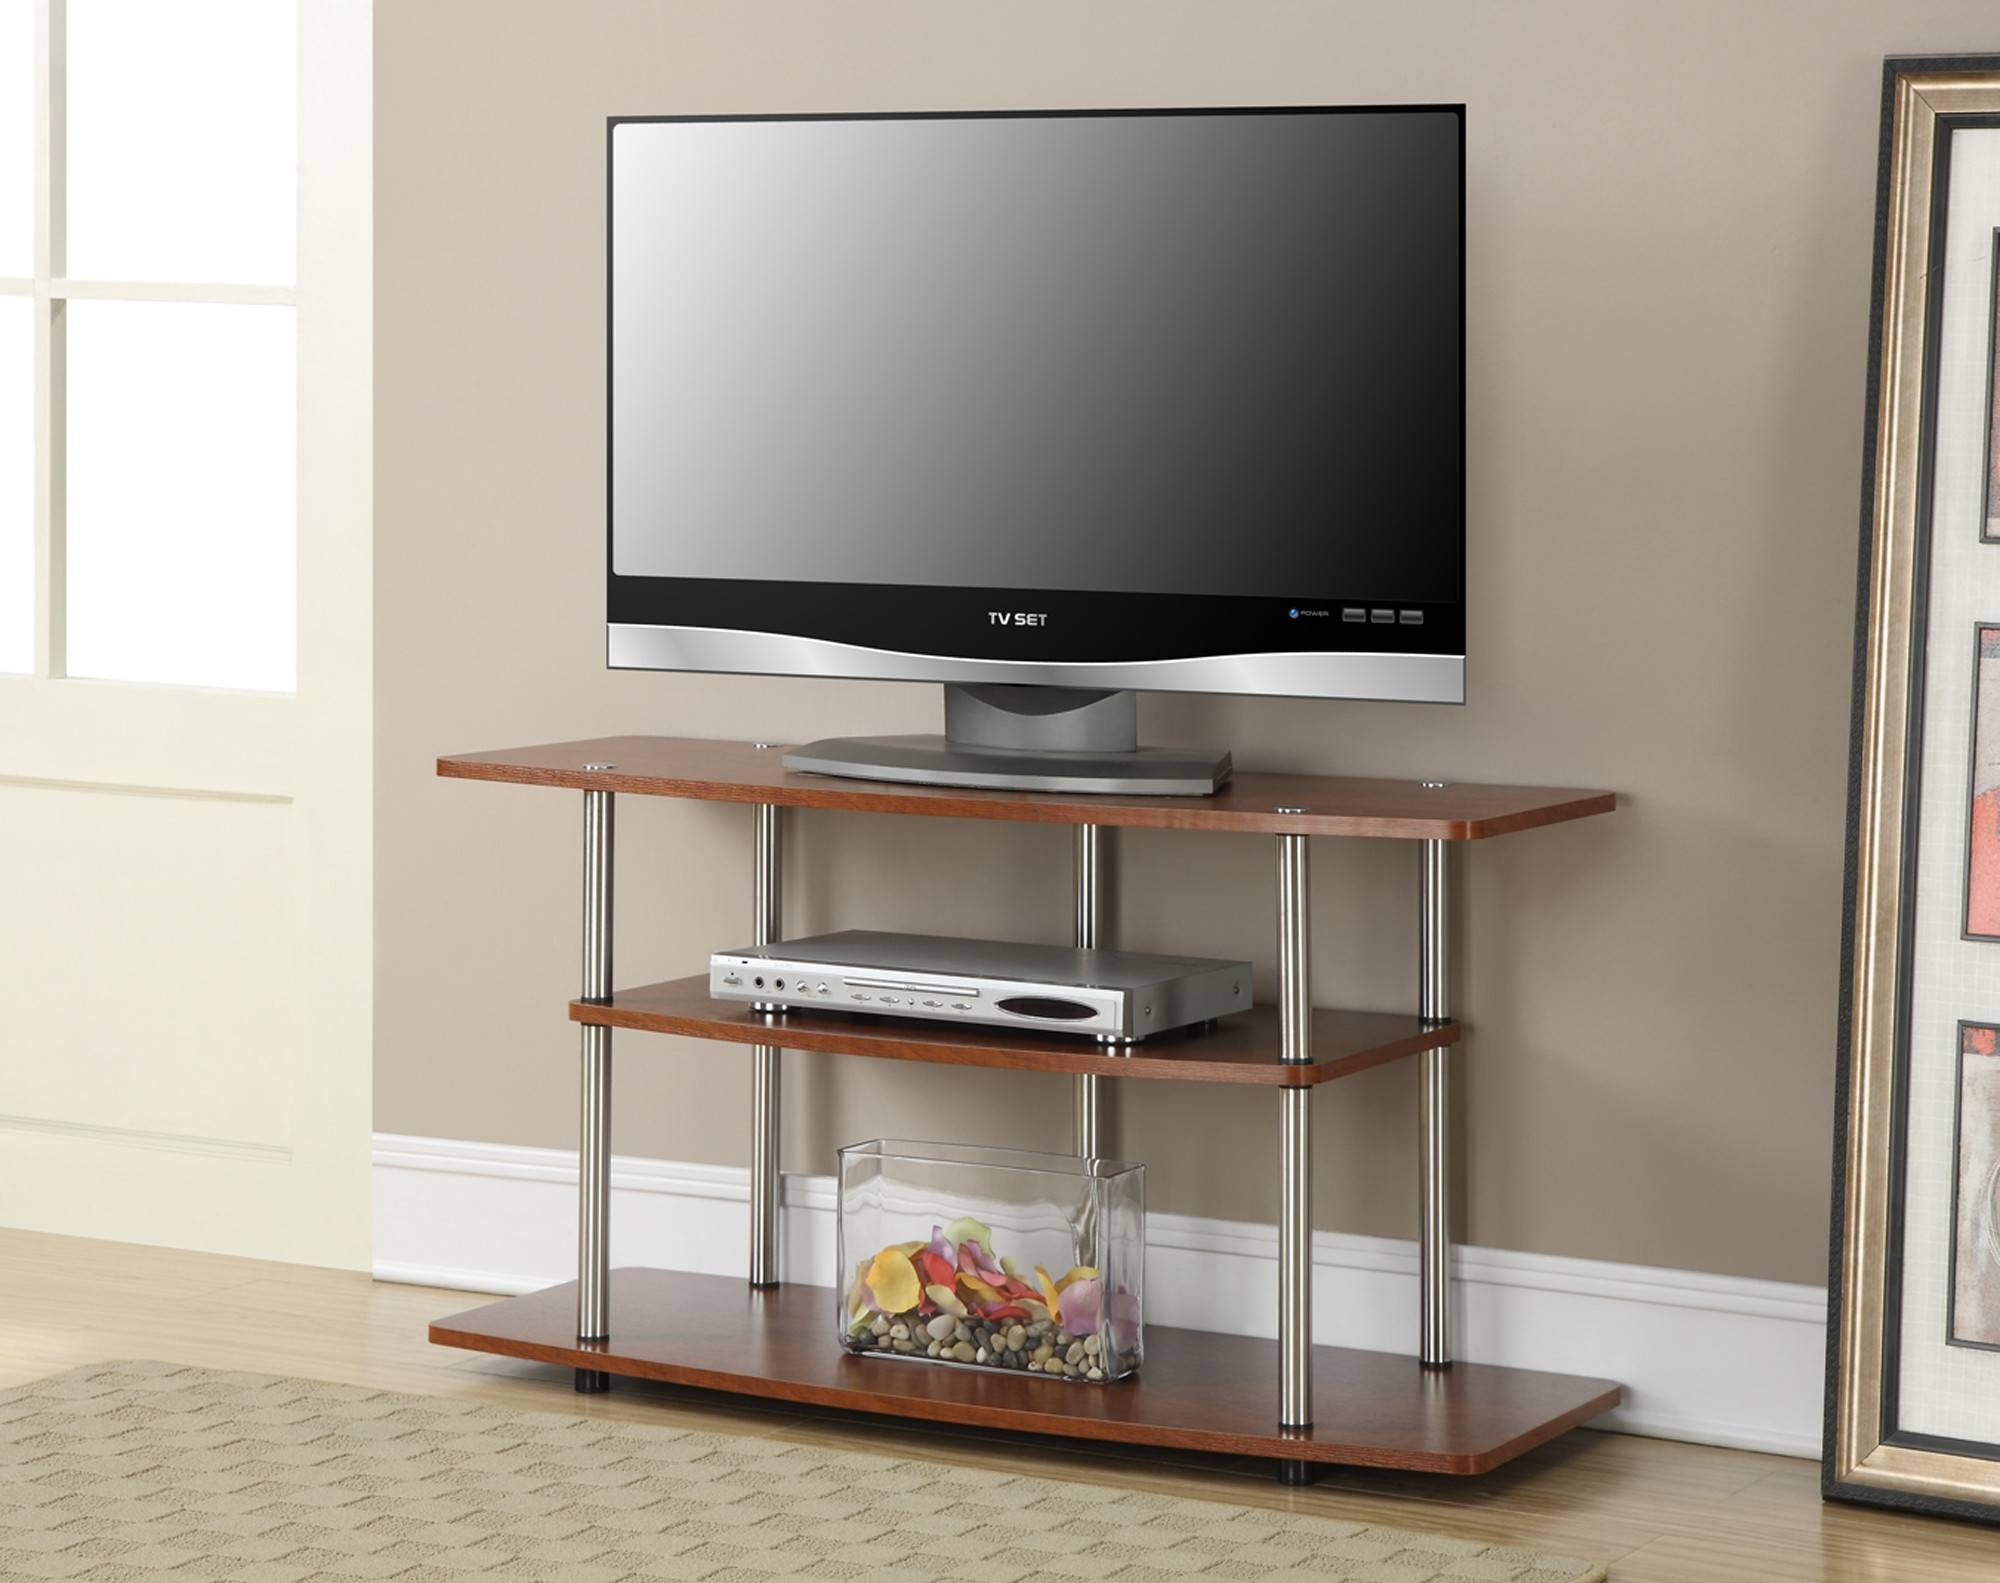 Tv Stand For Flat Tv Made Of Oak Wood In Brown Finished Combined with regard to Contemporary Tv Cabinets For Flat Screens (Image 11 of 15)